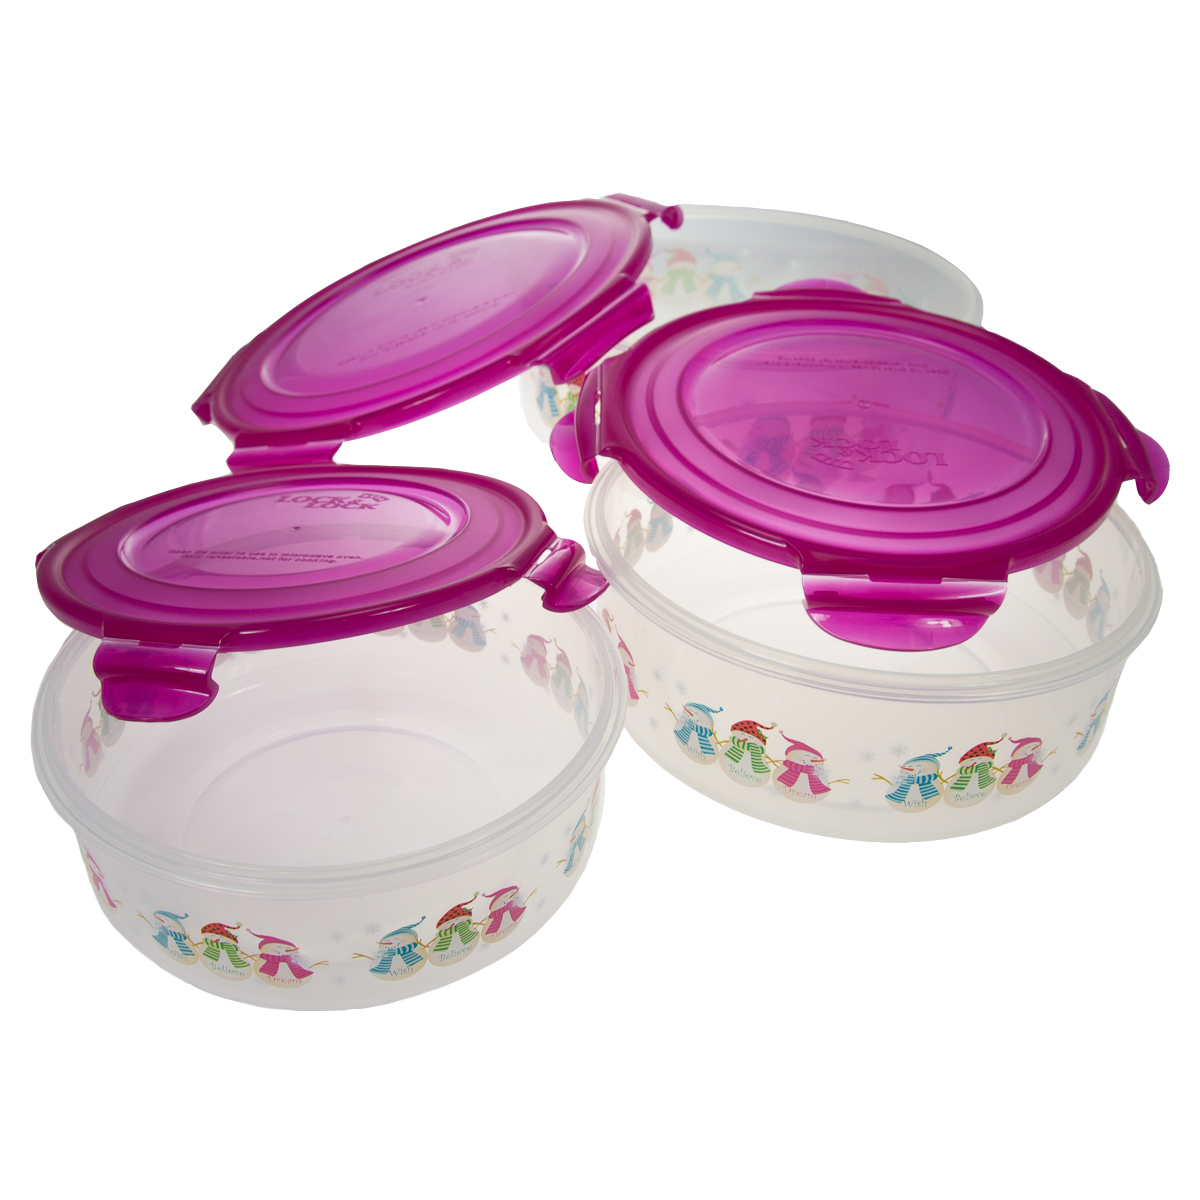 6pc Lock u0026 Lock Christmas Plastic Food Storage Containers Set Locking With Snap Lids Airtight BPA Free - Walmart.com  sc 1 st  Walmart & 6pc Lock u0026 Lock Christmas Plastic Food Storage Containers Set ...